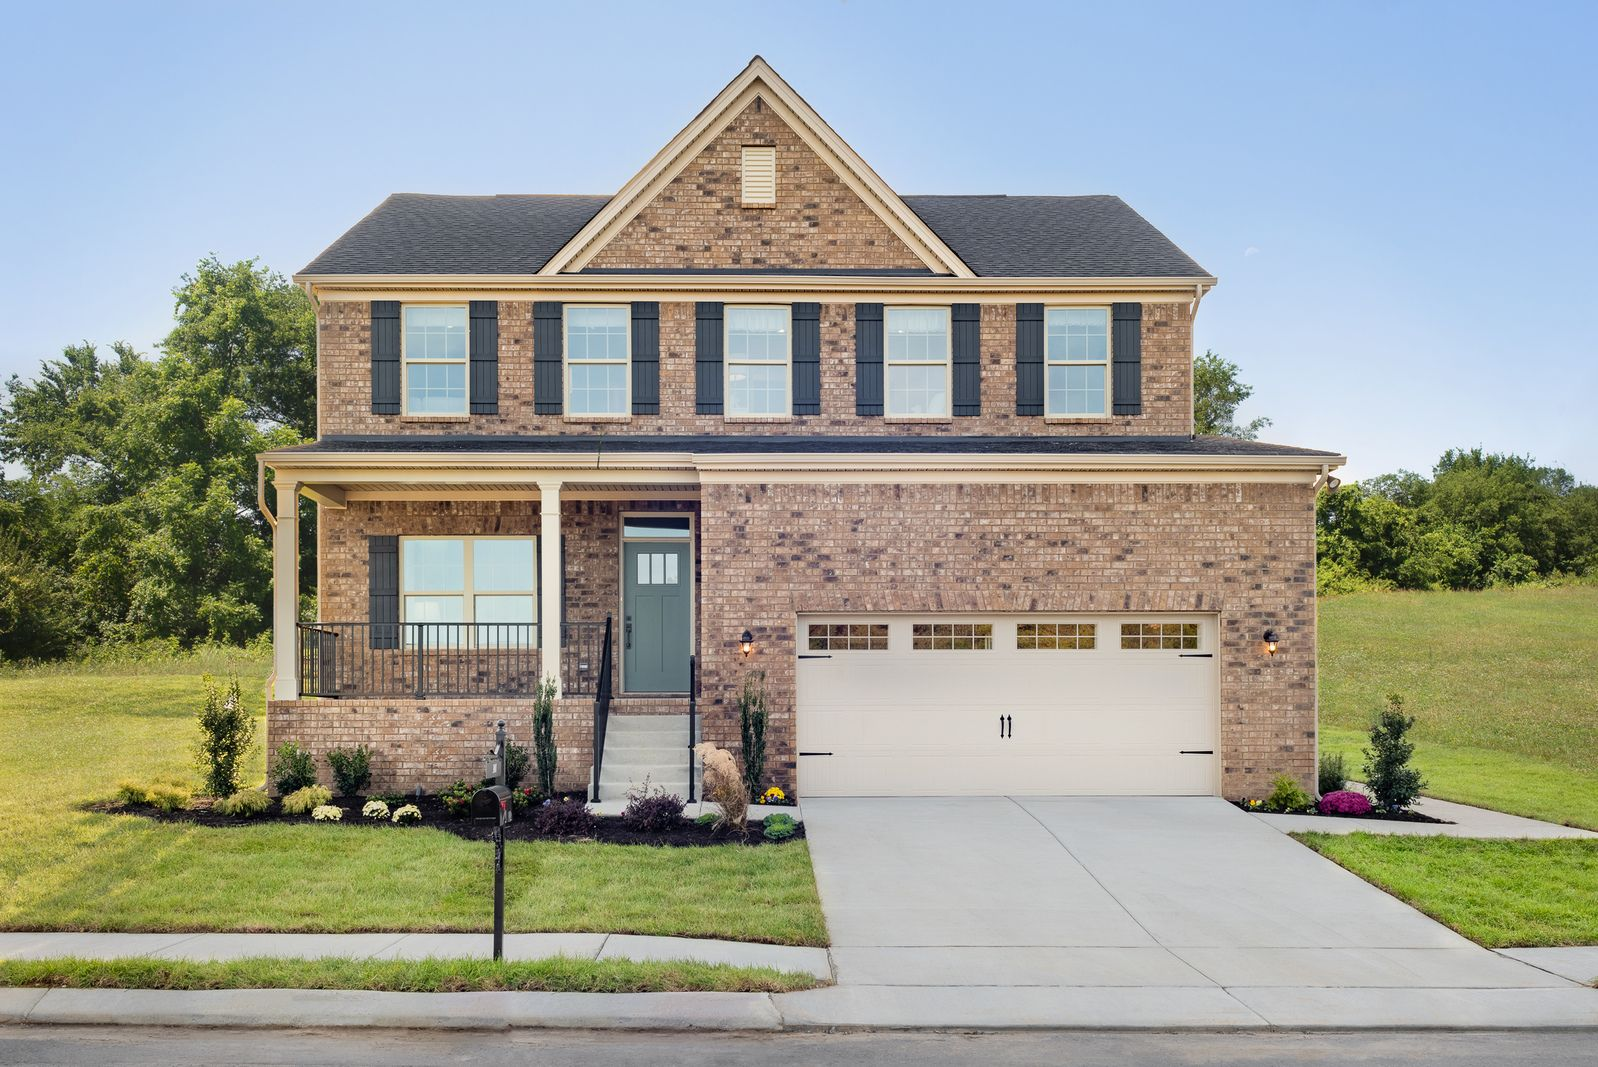 The Falls in Joelton - from the low $300s:Executive-style full brick homes in a quiet community surrounded by trees just 1 mile from I-24 and only 15 minutes to downtown Nashville.Visit us today to see just how scenic our community is!